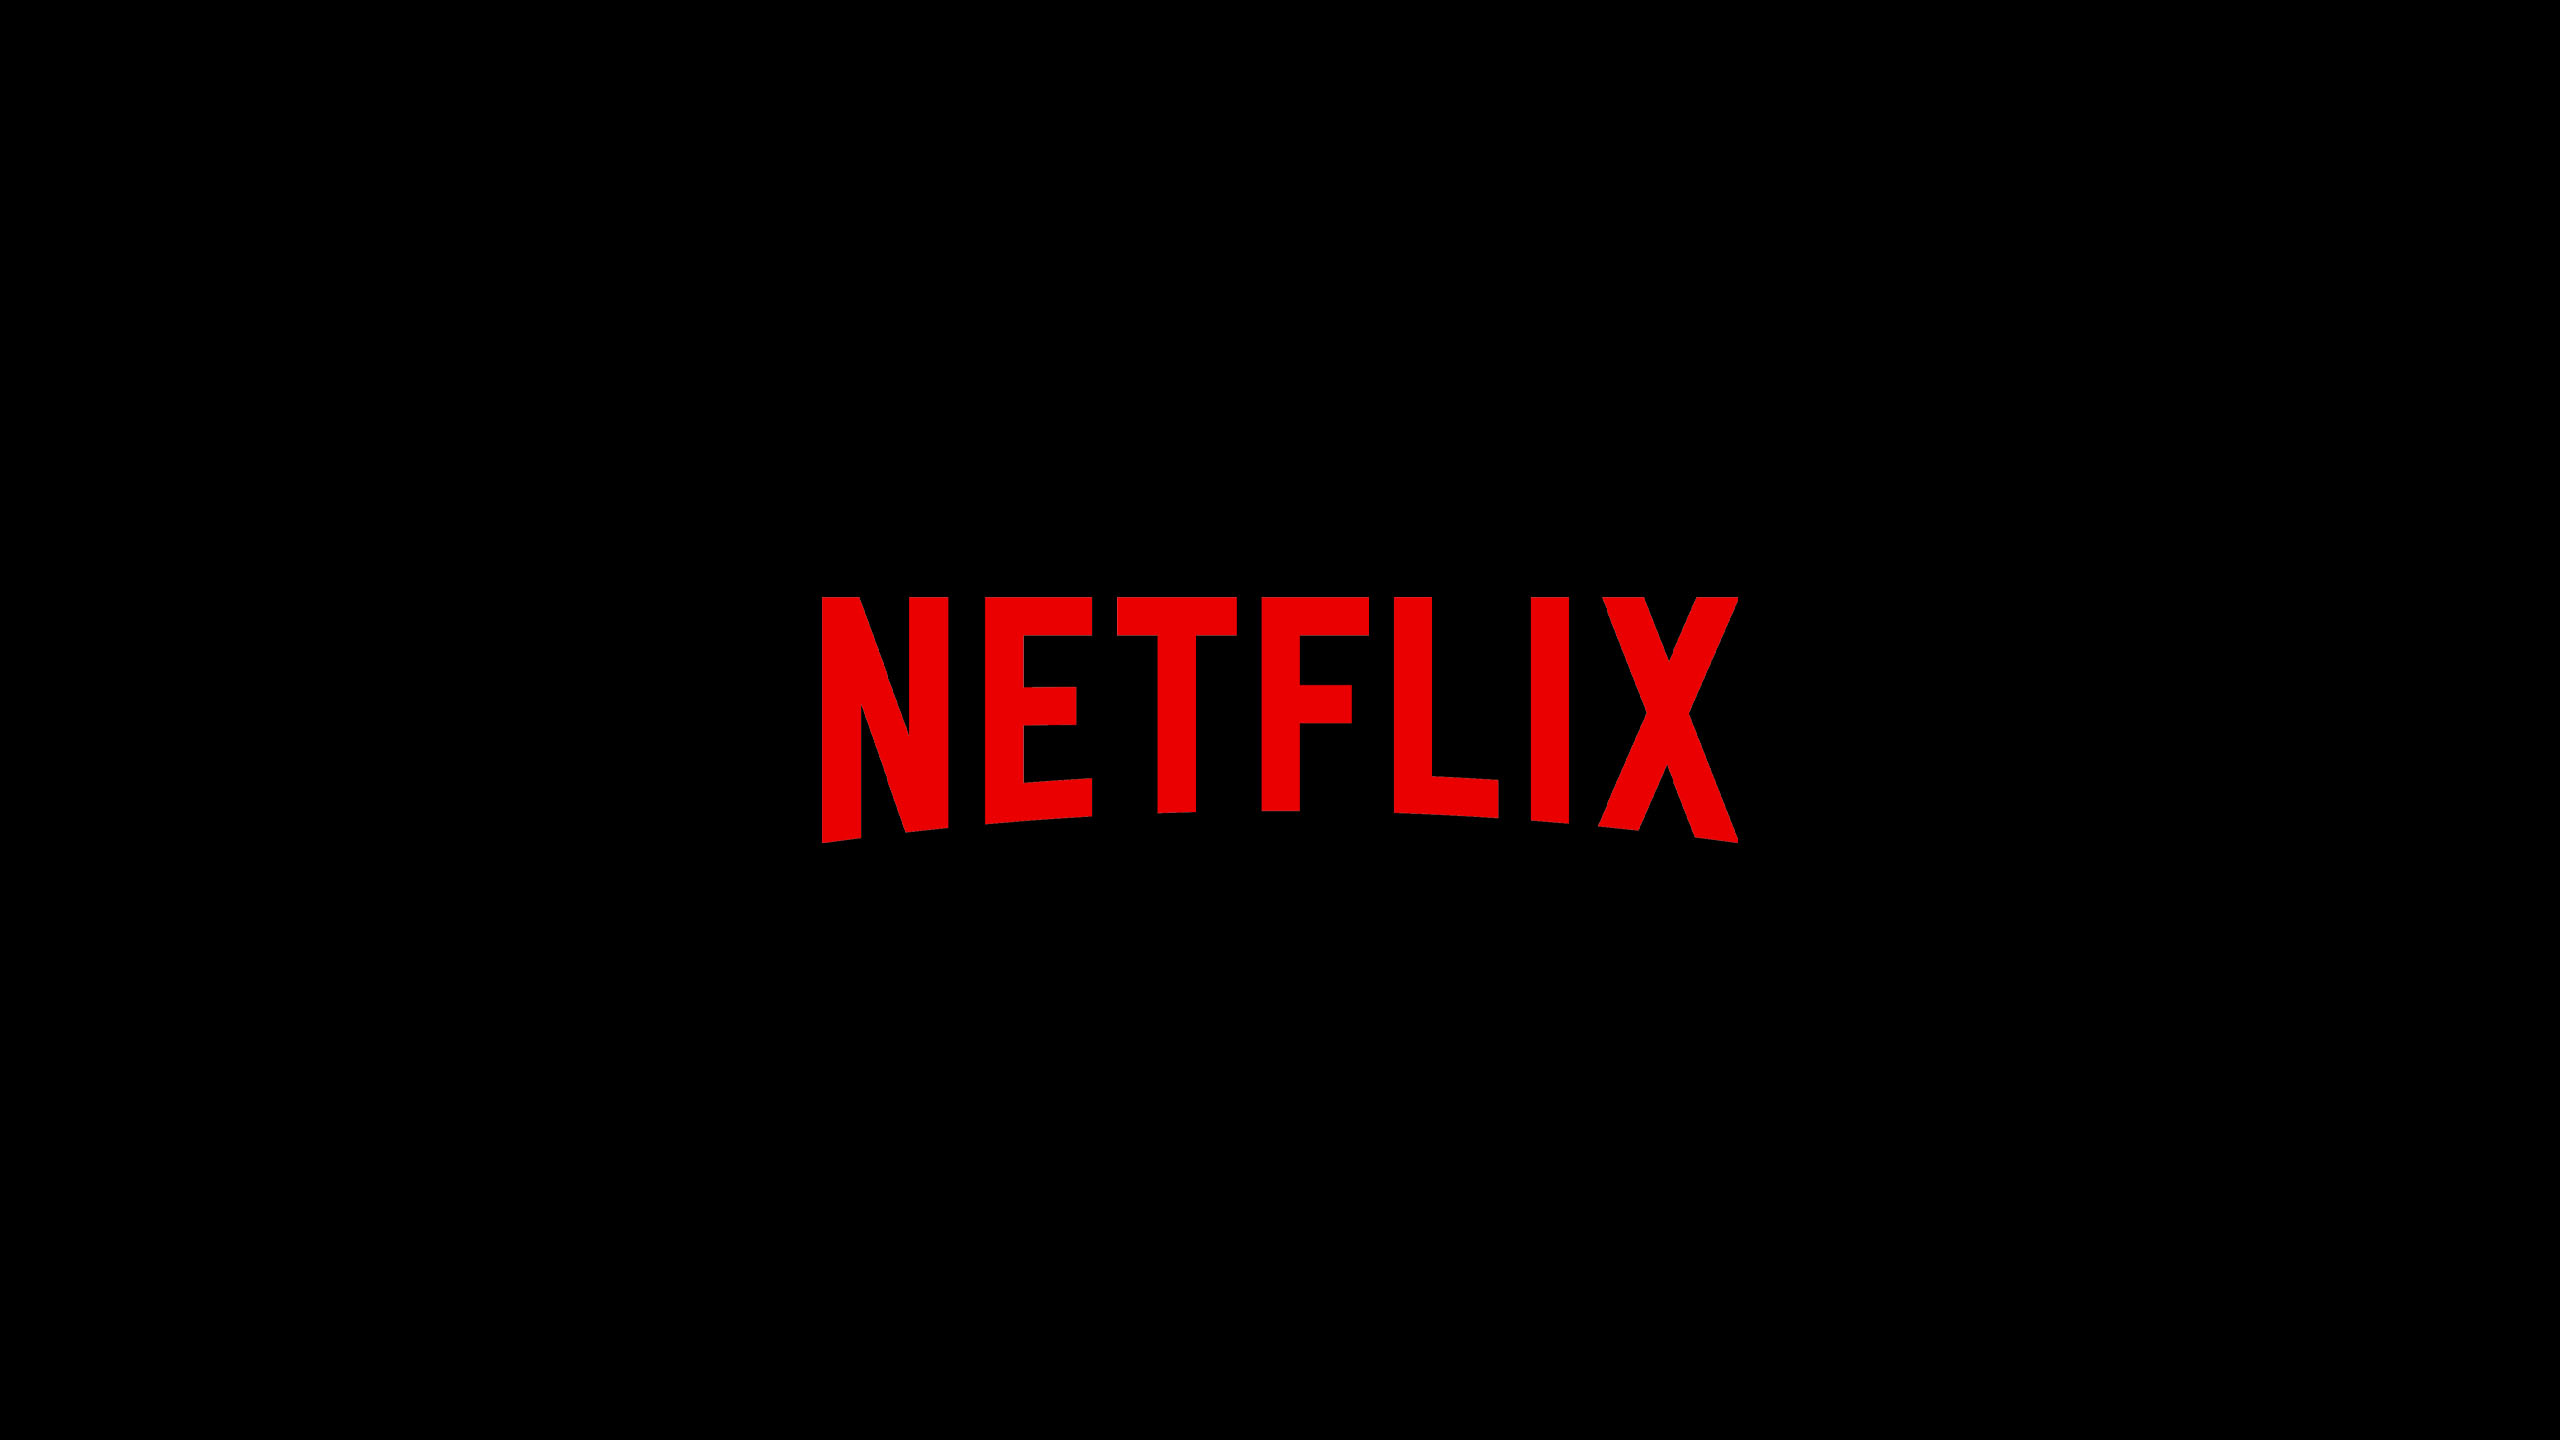 Netflix S On My Block Is Casting New Roles Job List Casting